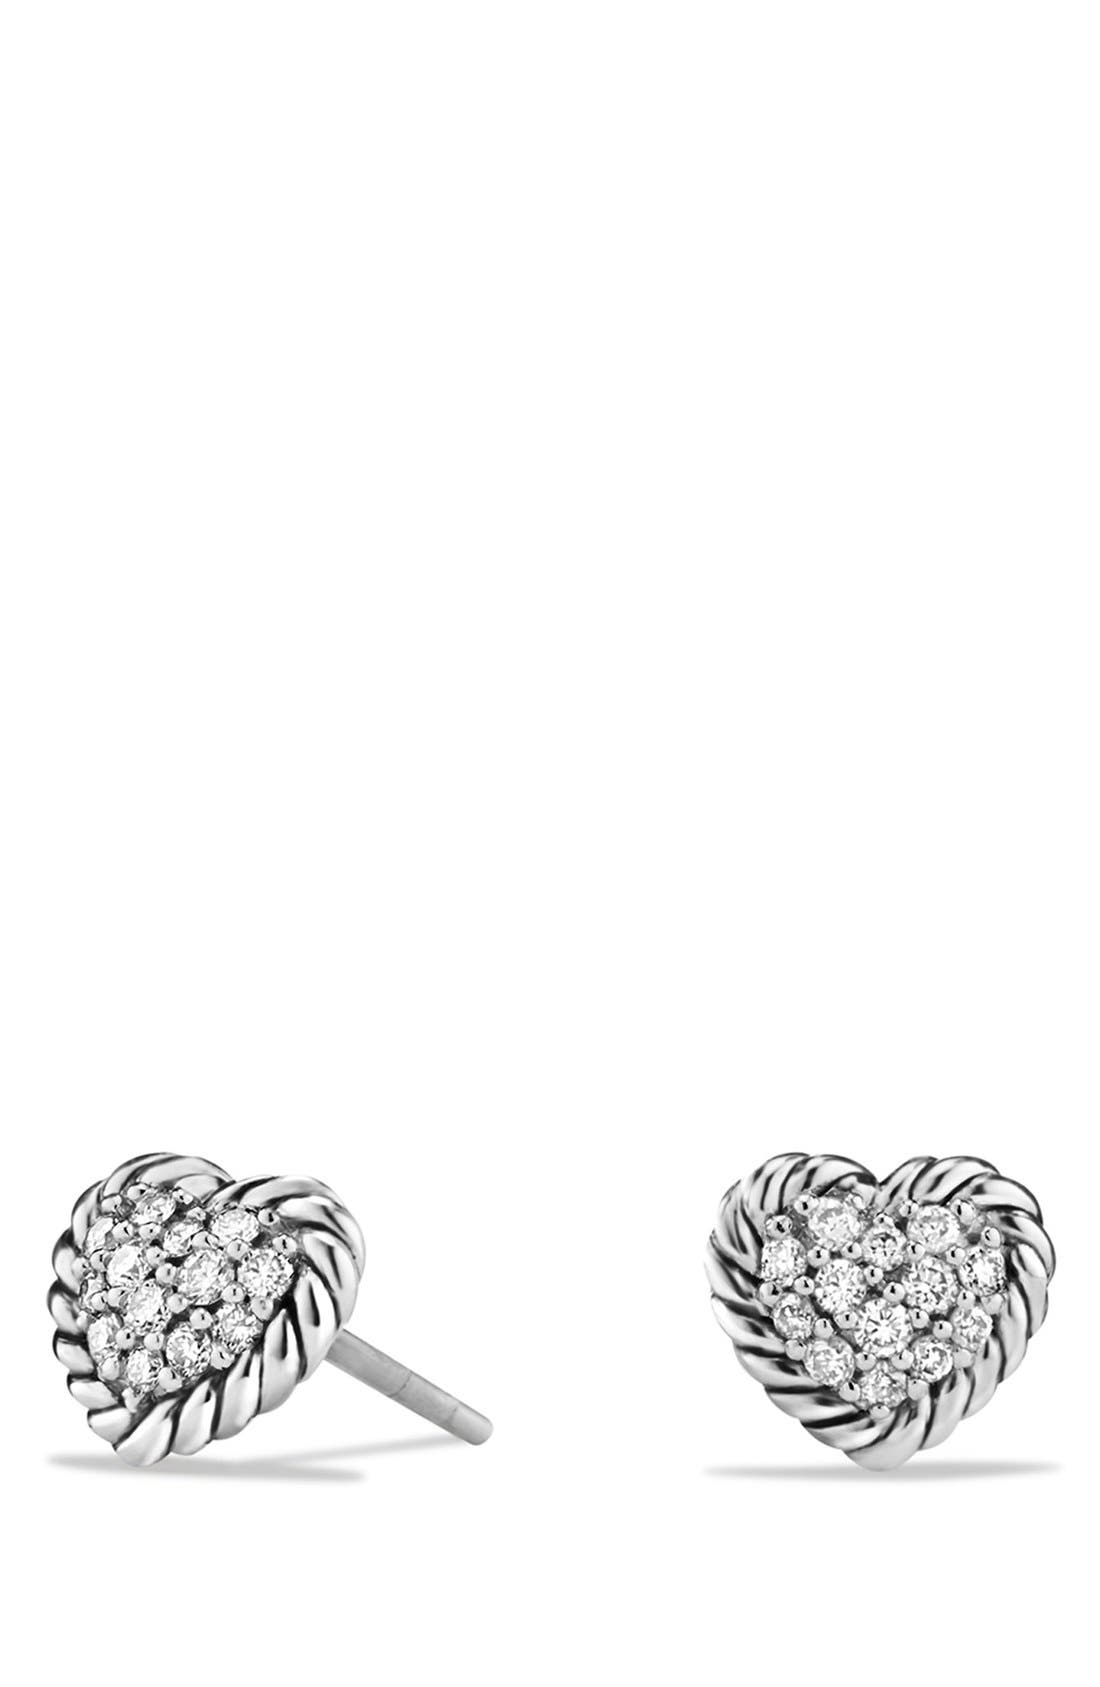 'Châtelaine' Heart Earrings with Diamonds,                             Main thumbnail 1, color,                             Silver